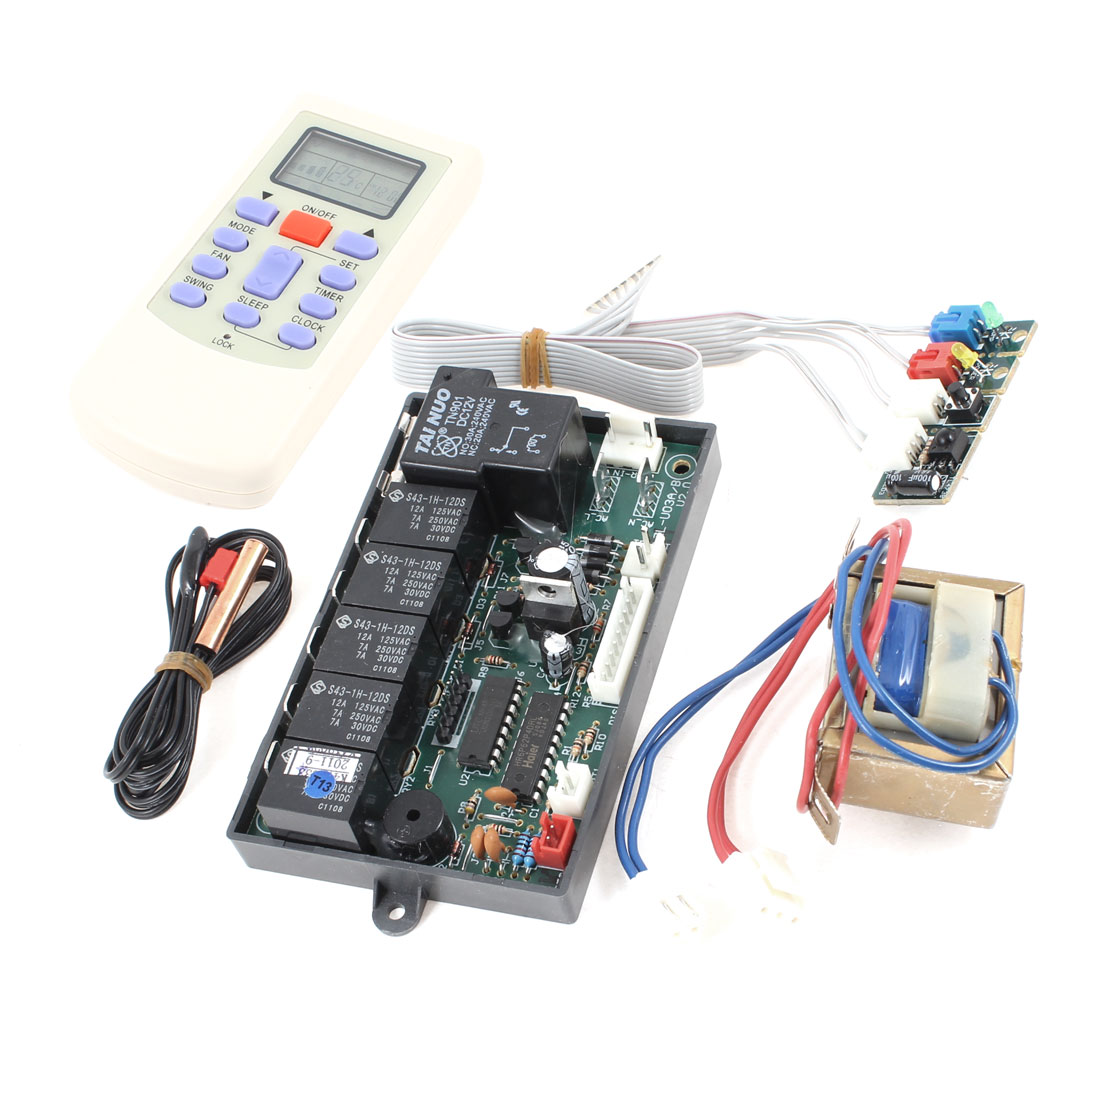 AC 220V 50/60Hz Air Conditioner LCD Digits Remote Controller Panel Board